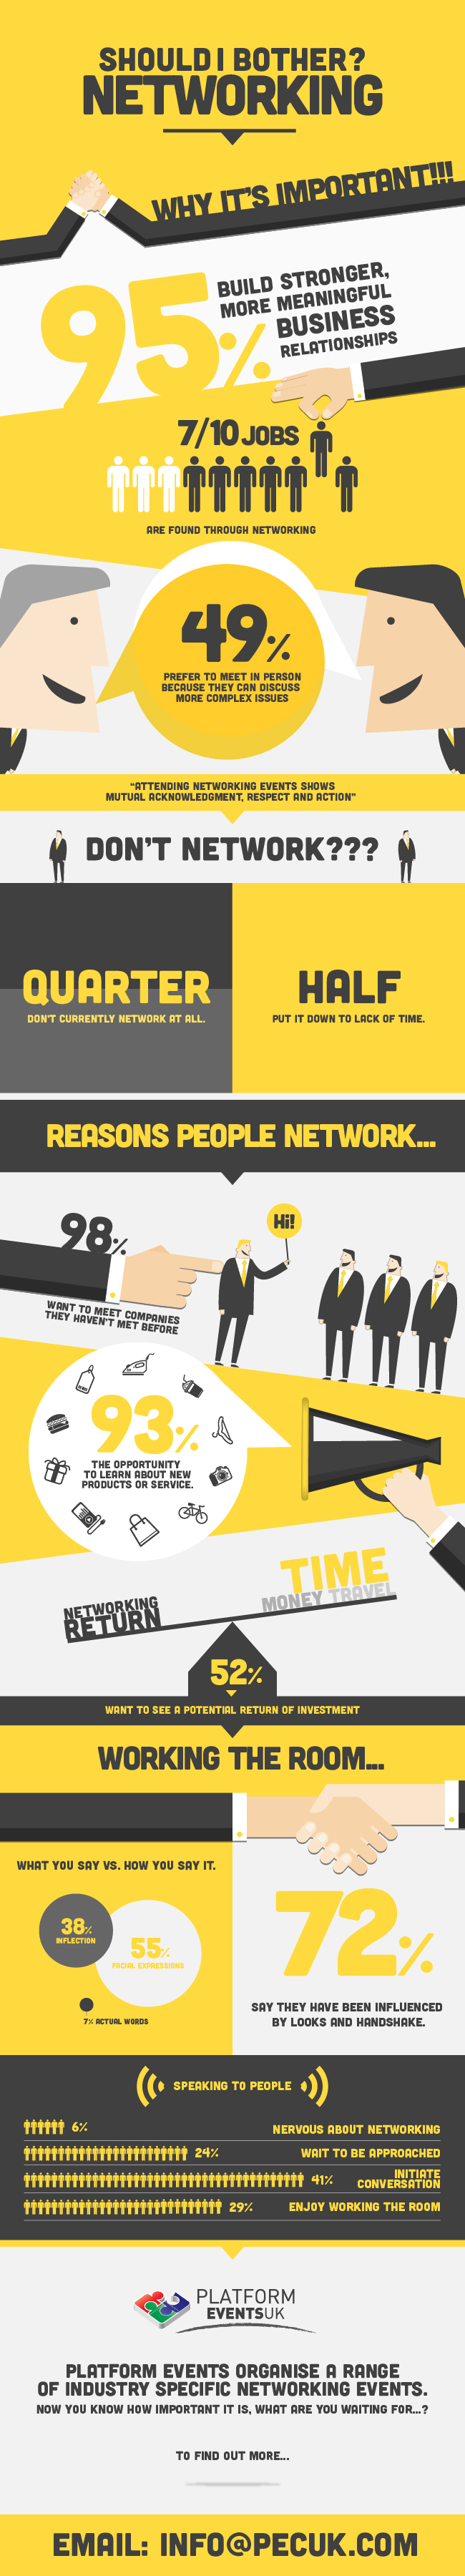 [INFOGRAPHIC] Should I Bother ? Networking